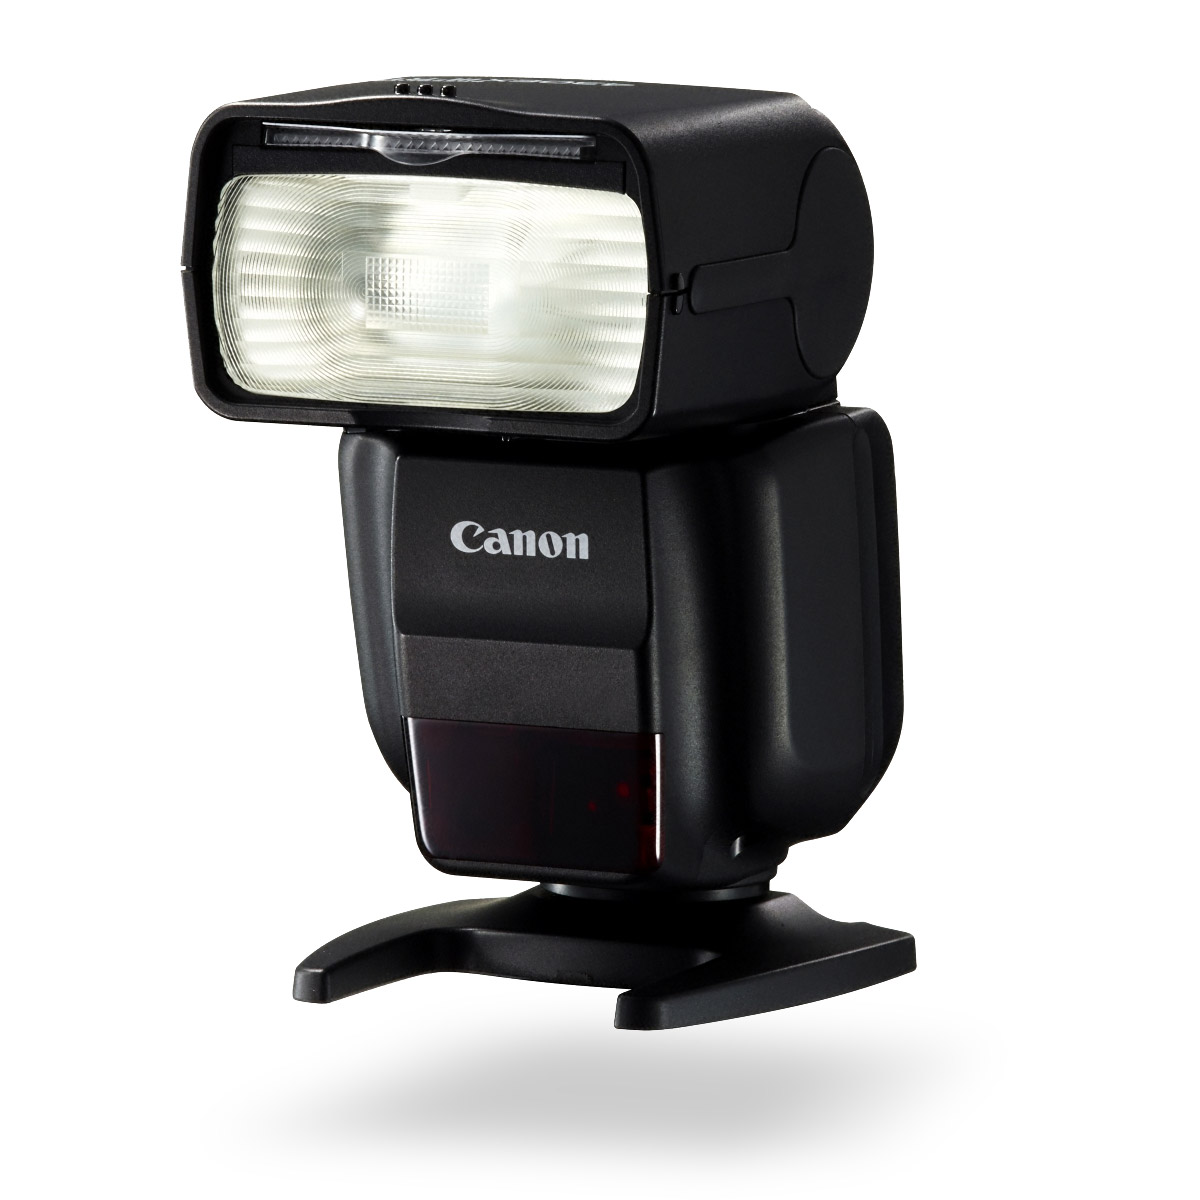 Canon Speedlite 430EX III flash